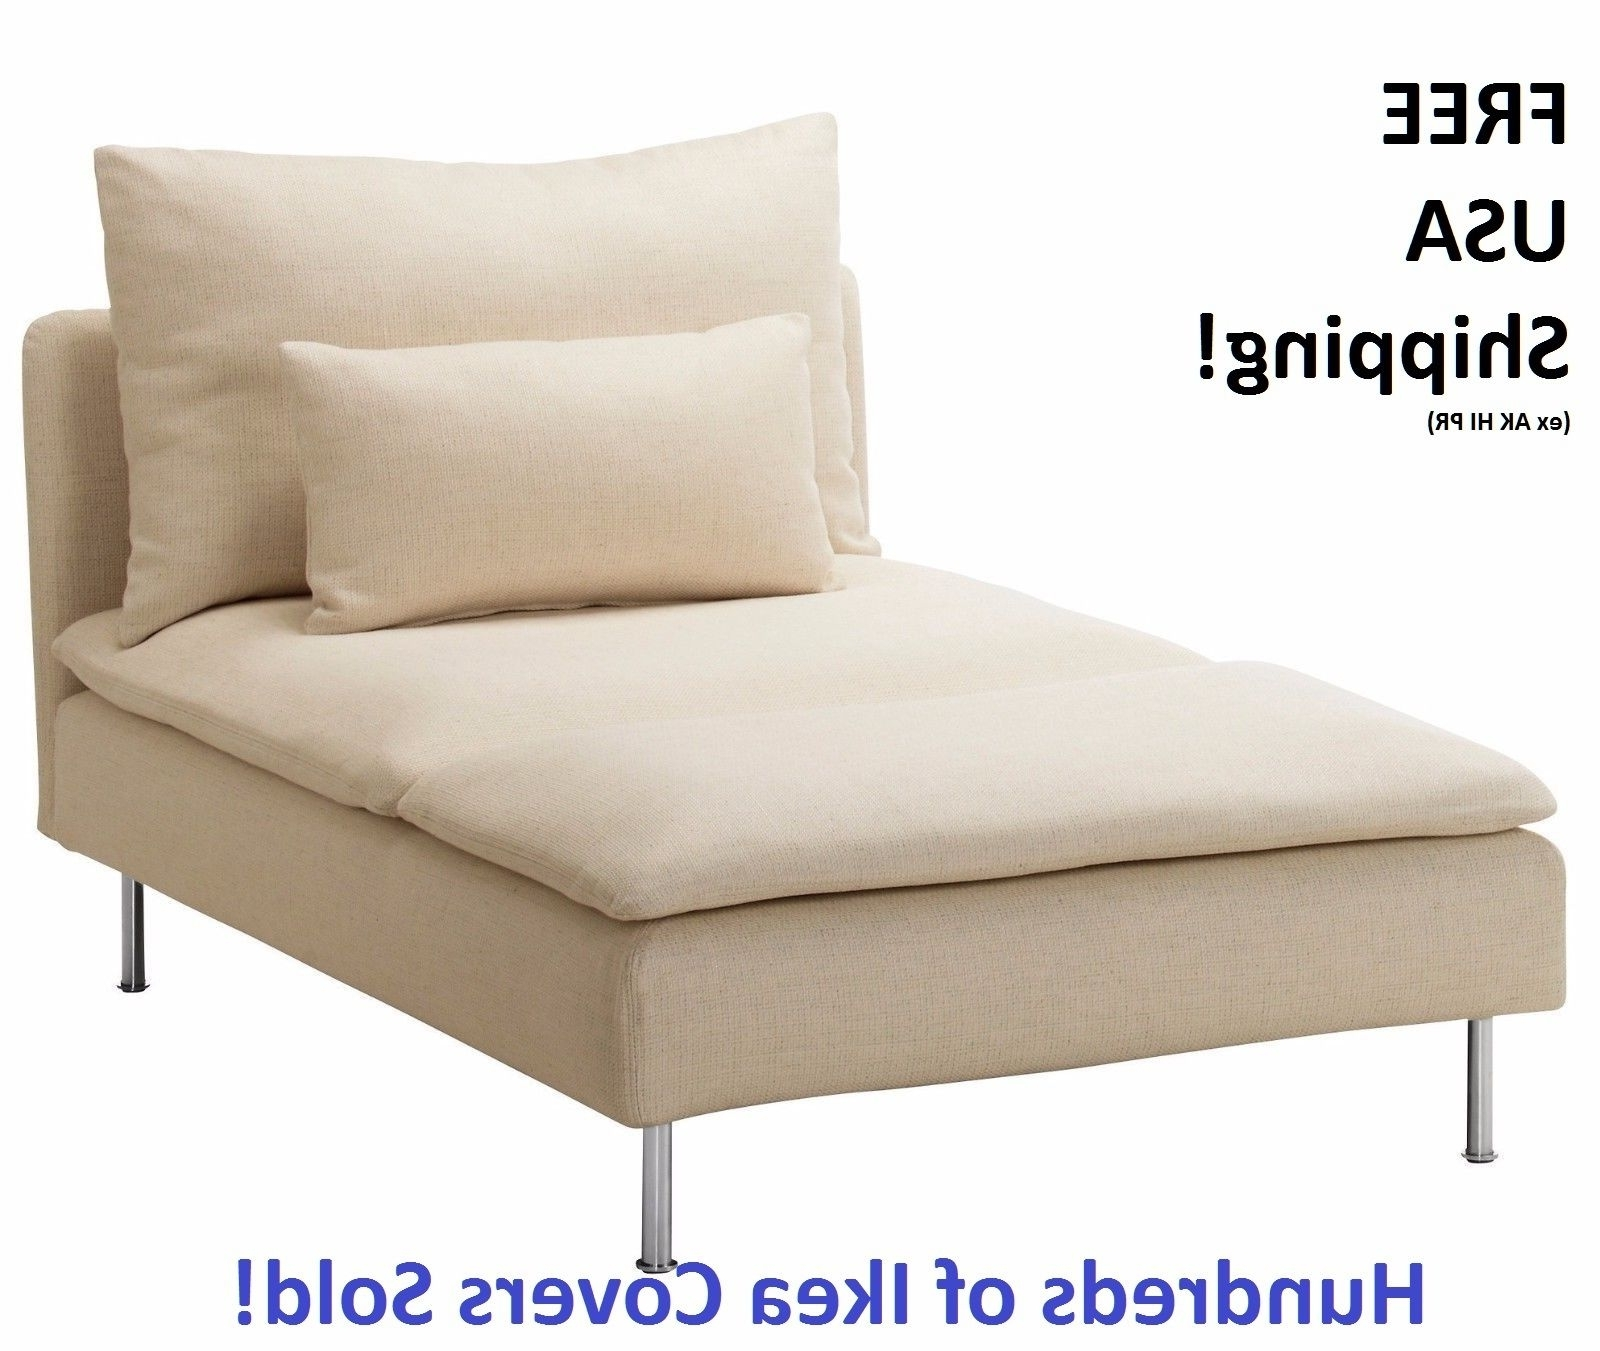 Ebay With Popular Slipcovesr For Chaise Lounge (View 12 of 15)